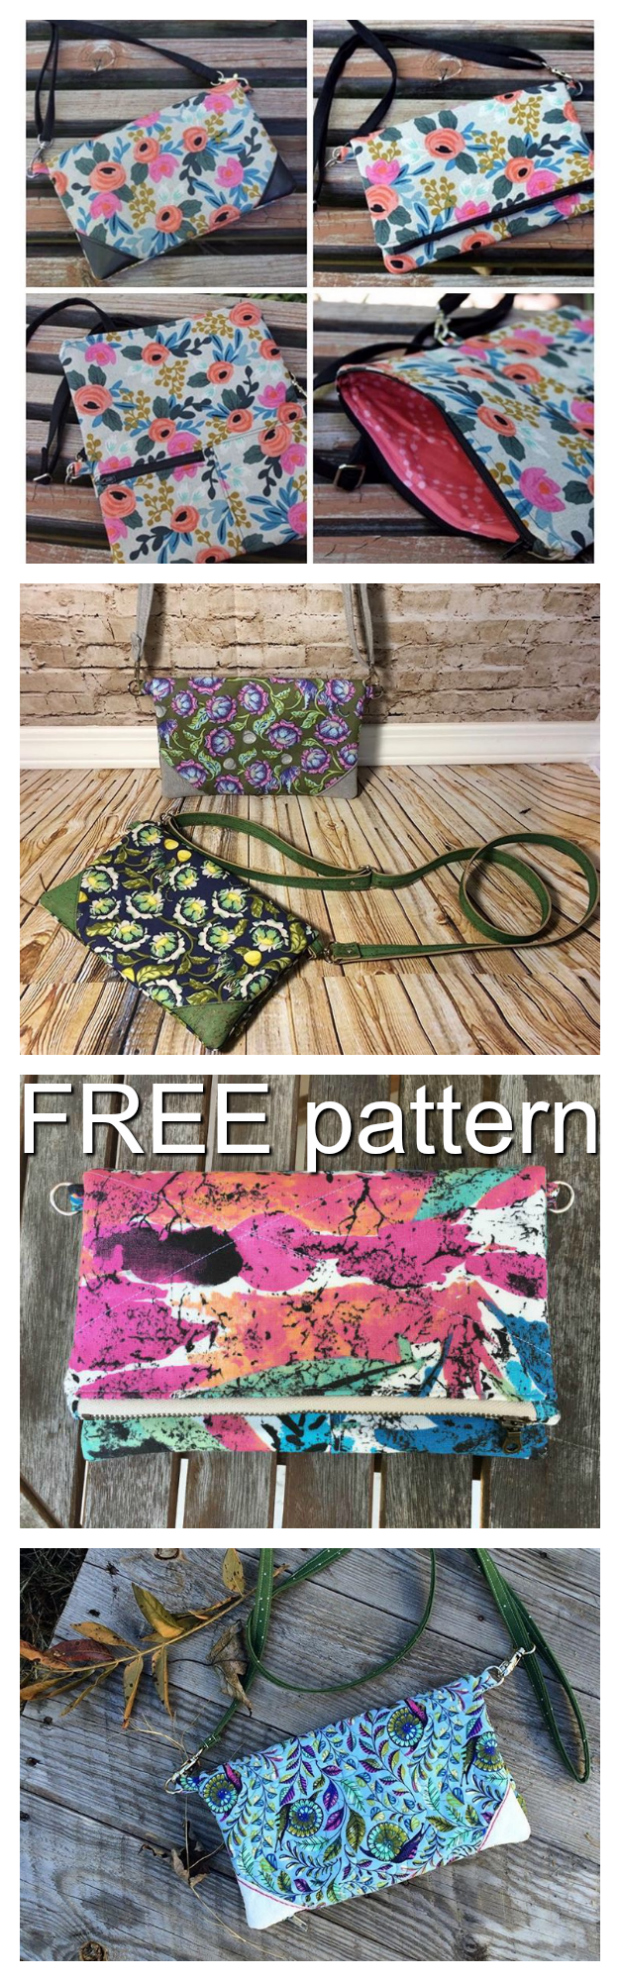 This is a great FREE pattern for a beginner sewer to make. The Gatsby Cross Body Clutch bag has a large top zipper, a smaller exterior zipper and a corner accent to add some flair.